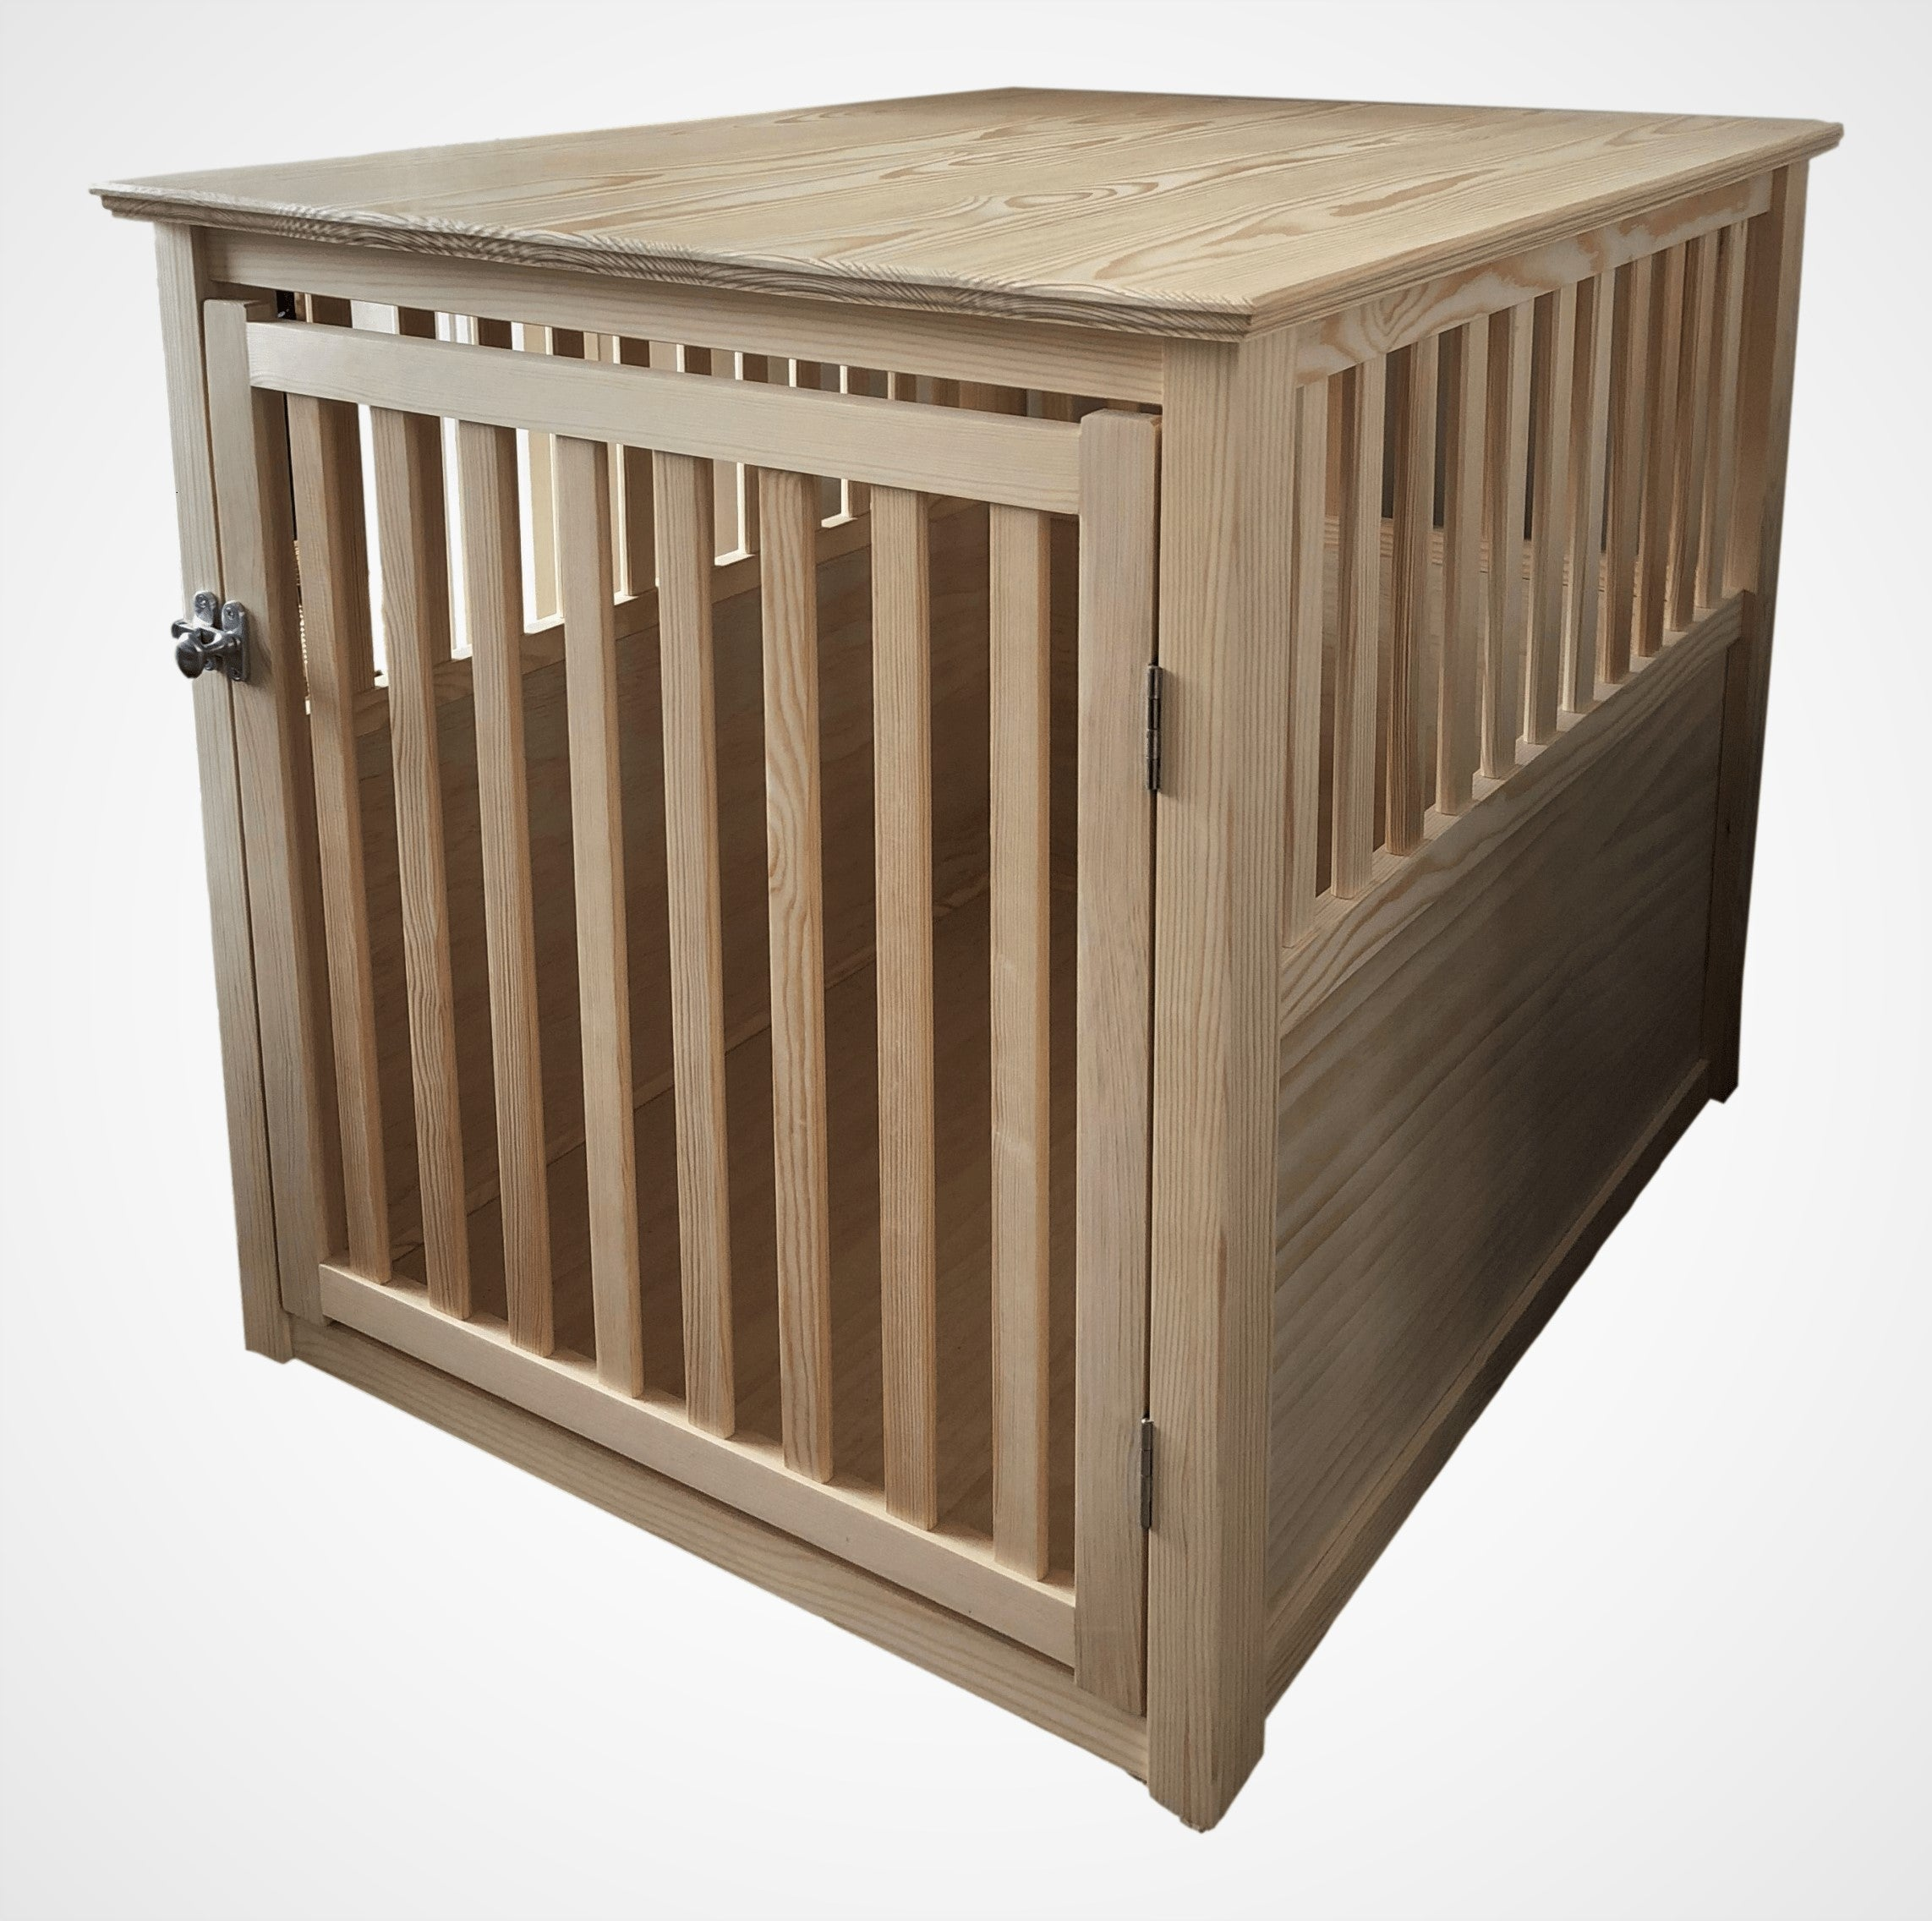 Solid Pine Wooden Dog Crate - R&M Woodworking